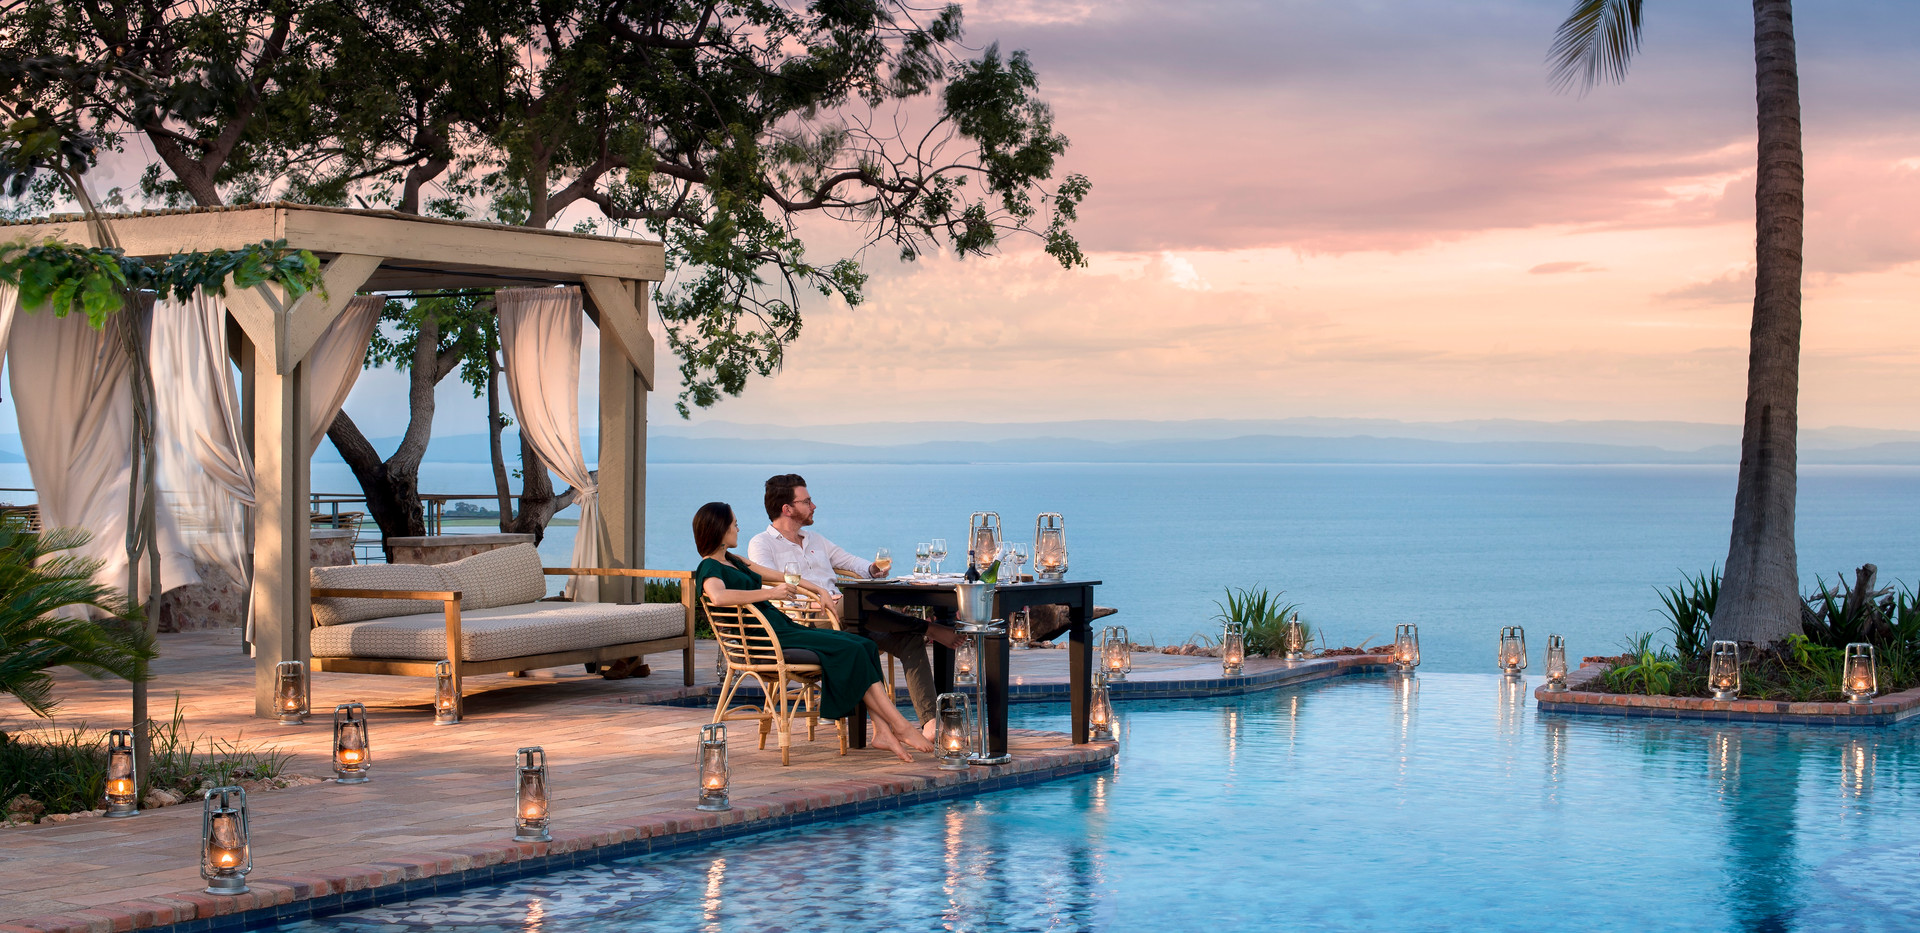 Honeymoon Sundowner at Bumi Hills